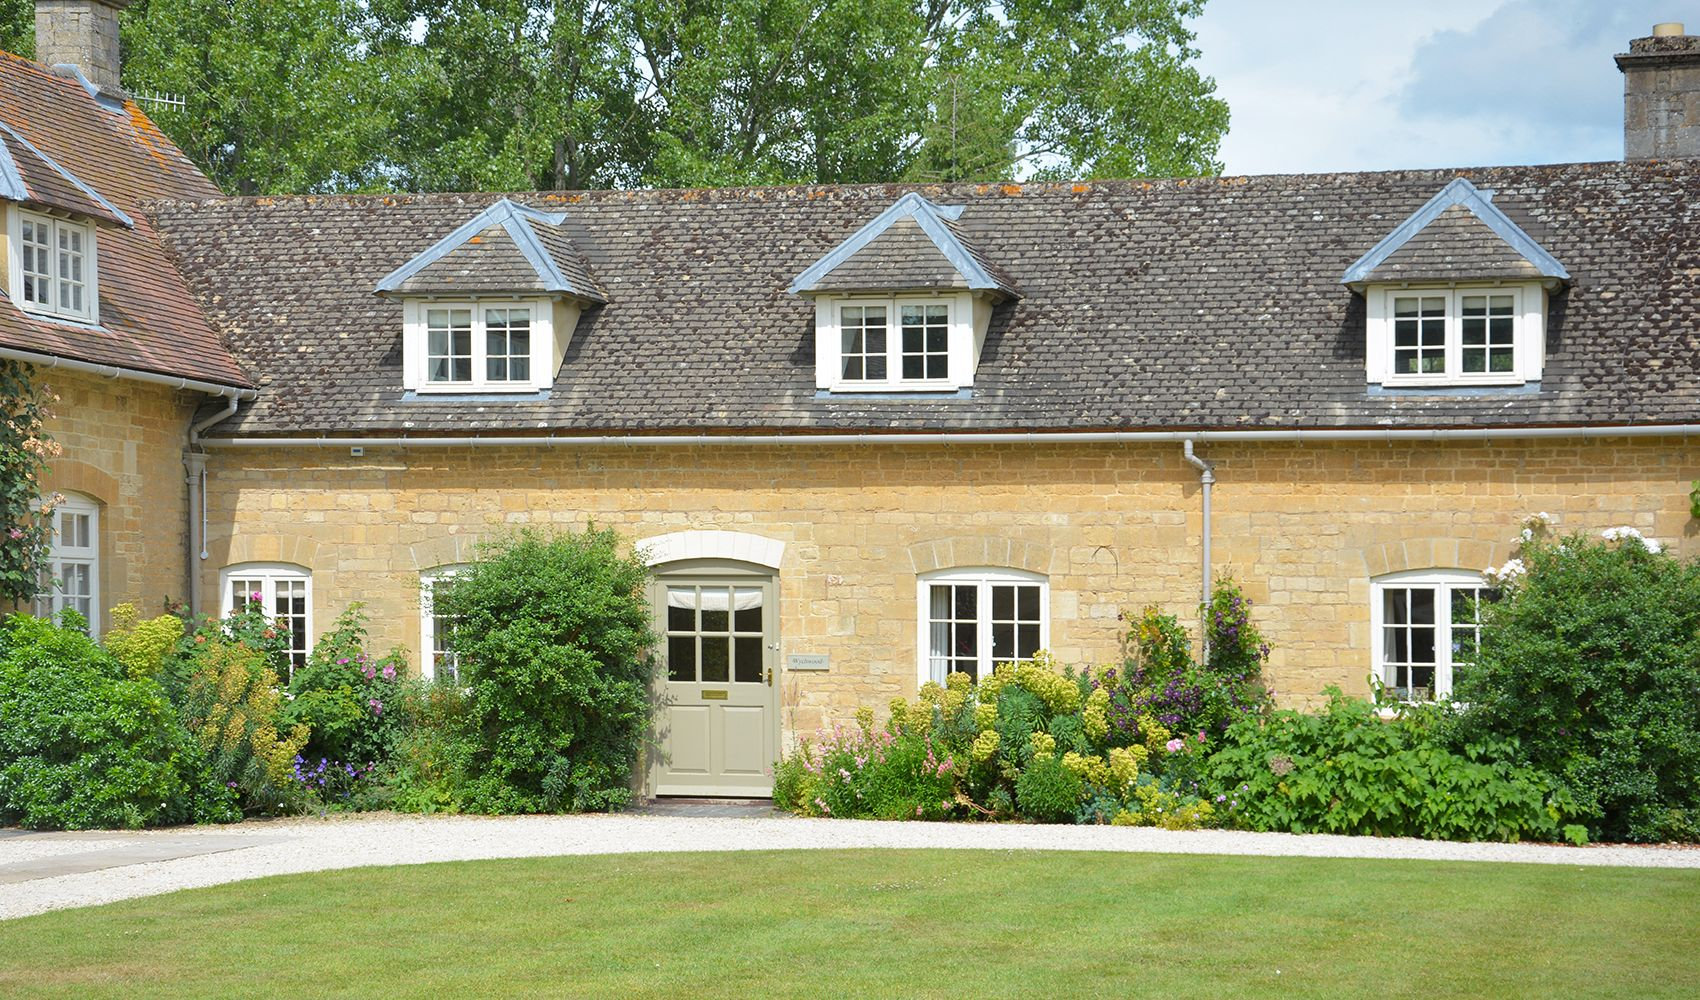 Wychwood Cottage, sleeping 4, is on the right-hand side of Bruern's courtyard